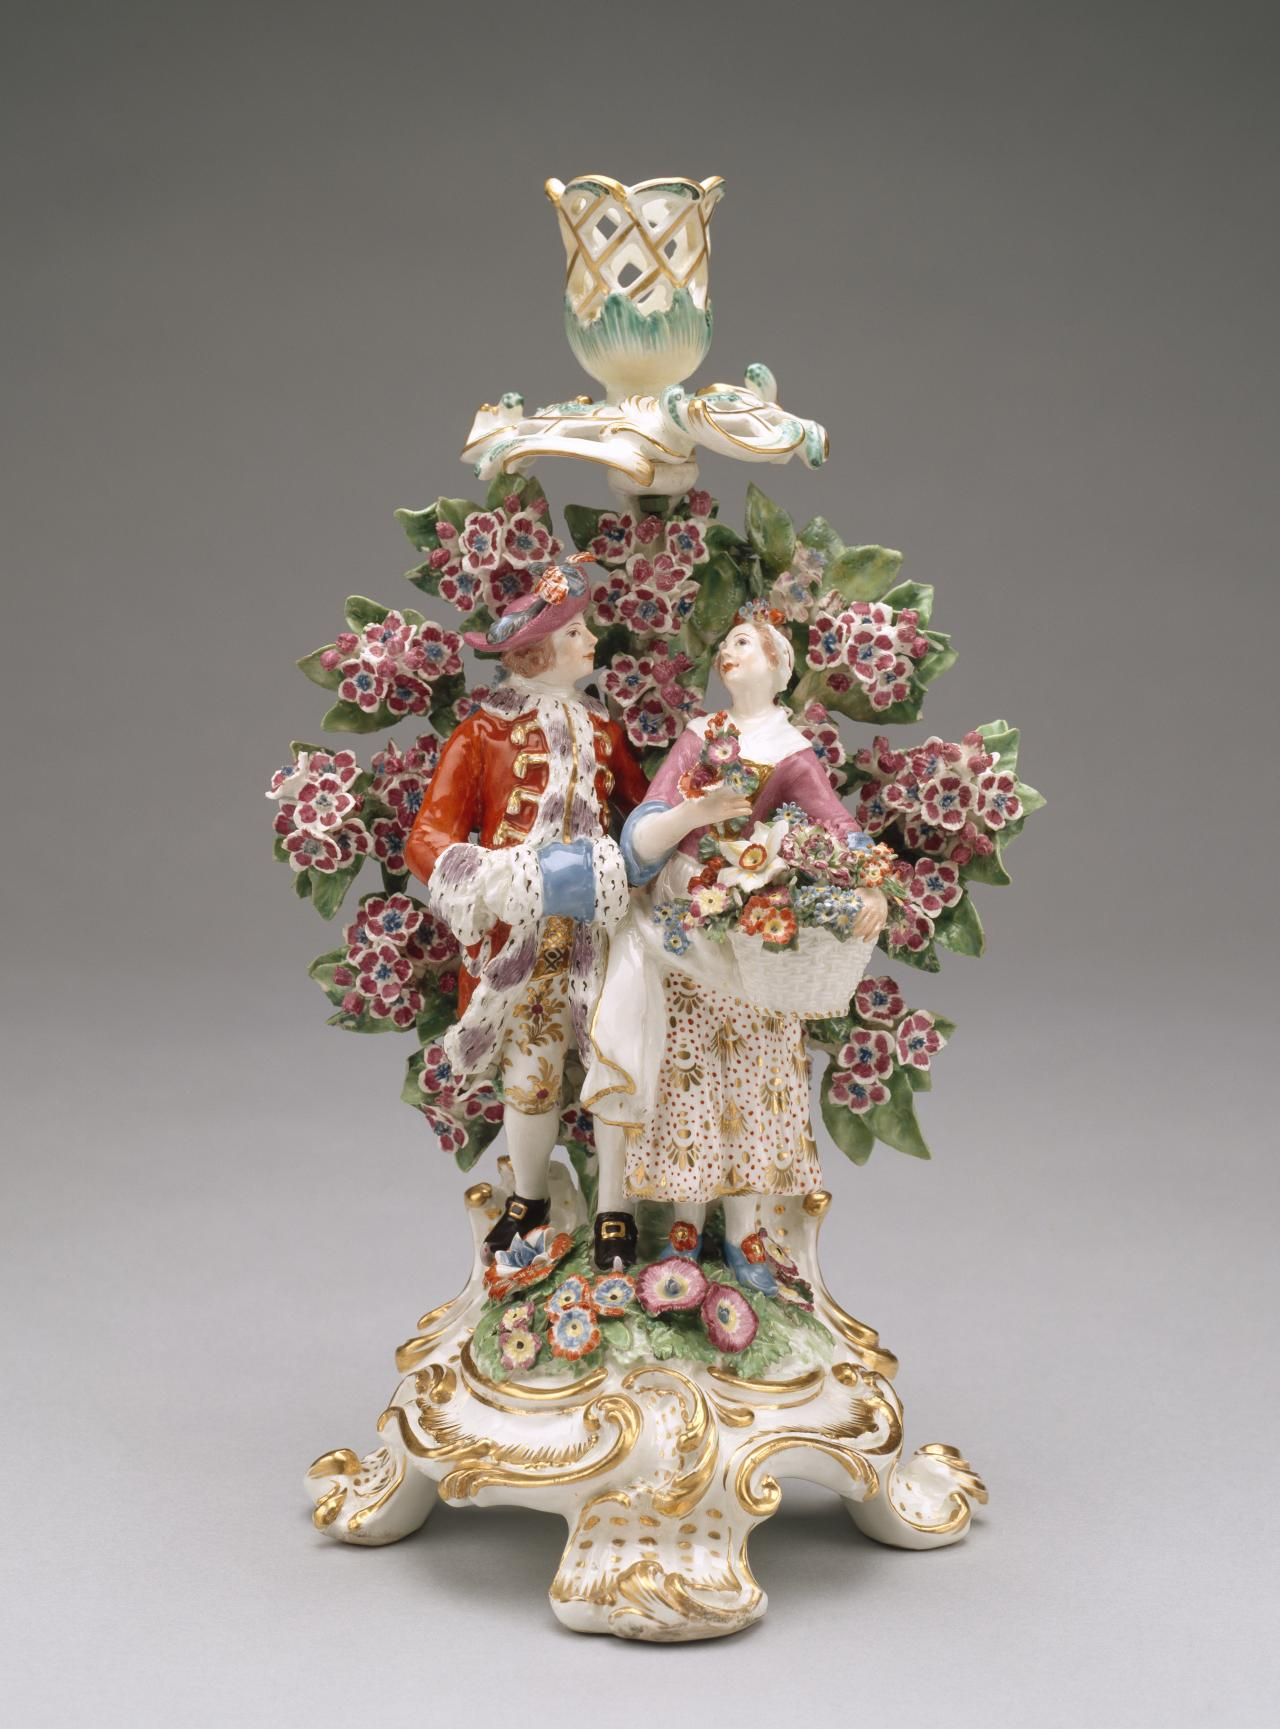 Winter and spring, from The four seasons, candlestick